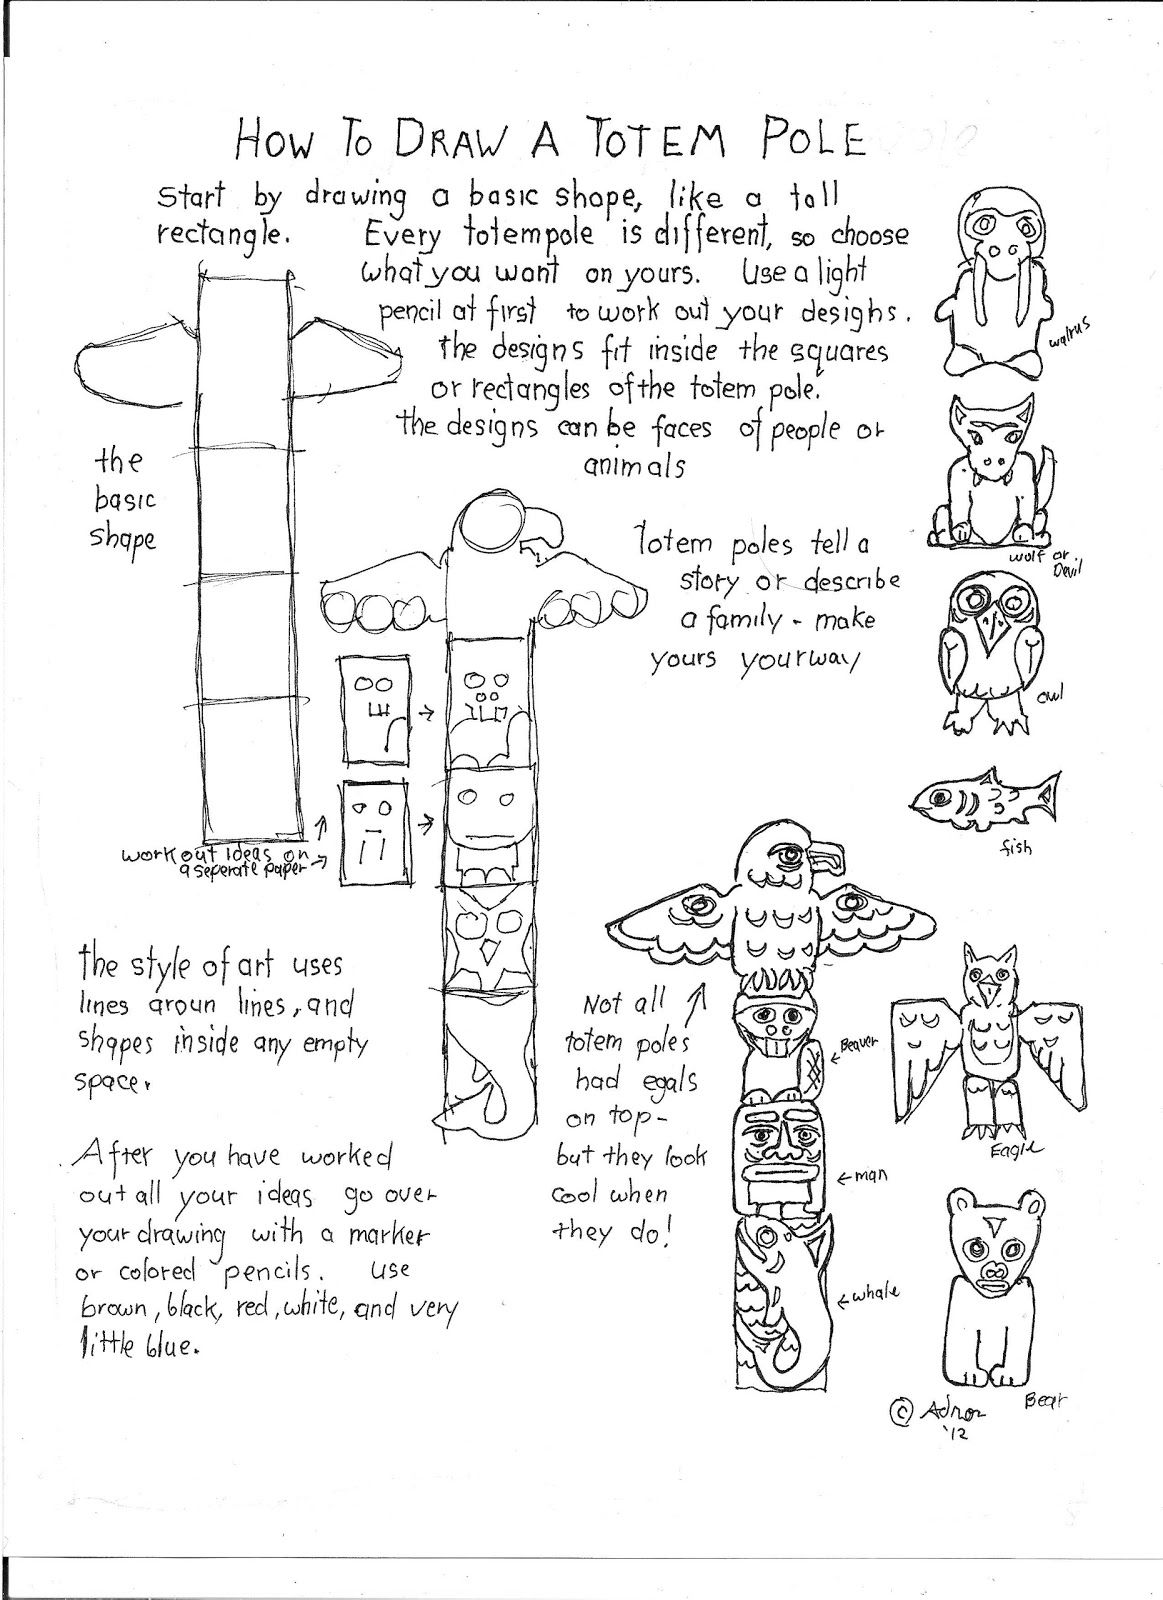 how to draw a totem pole printable worksheet | native american art